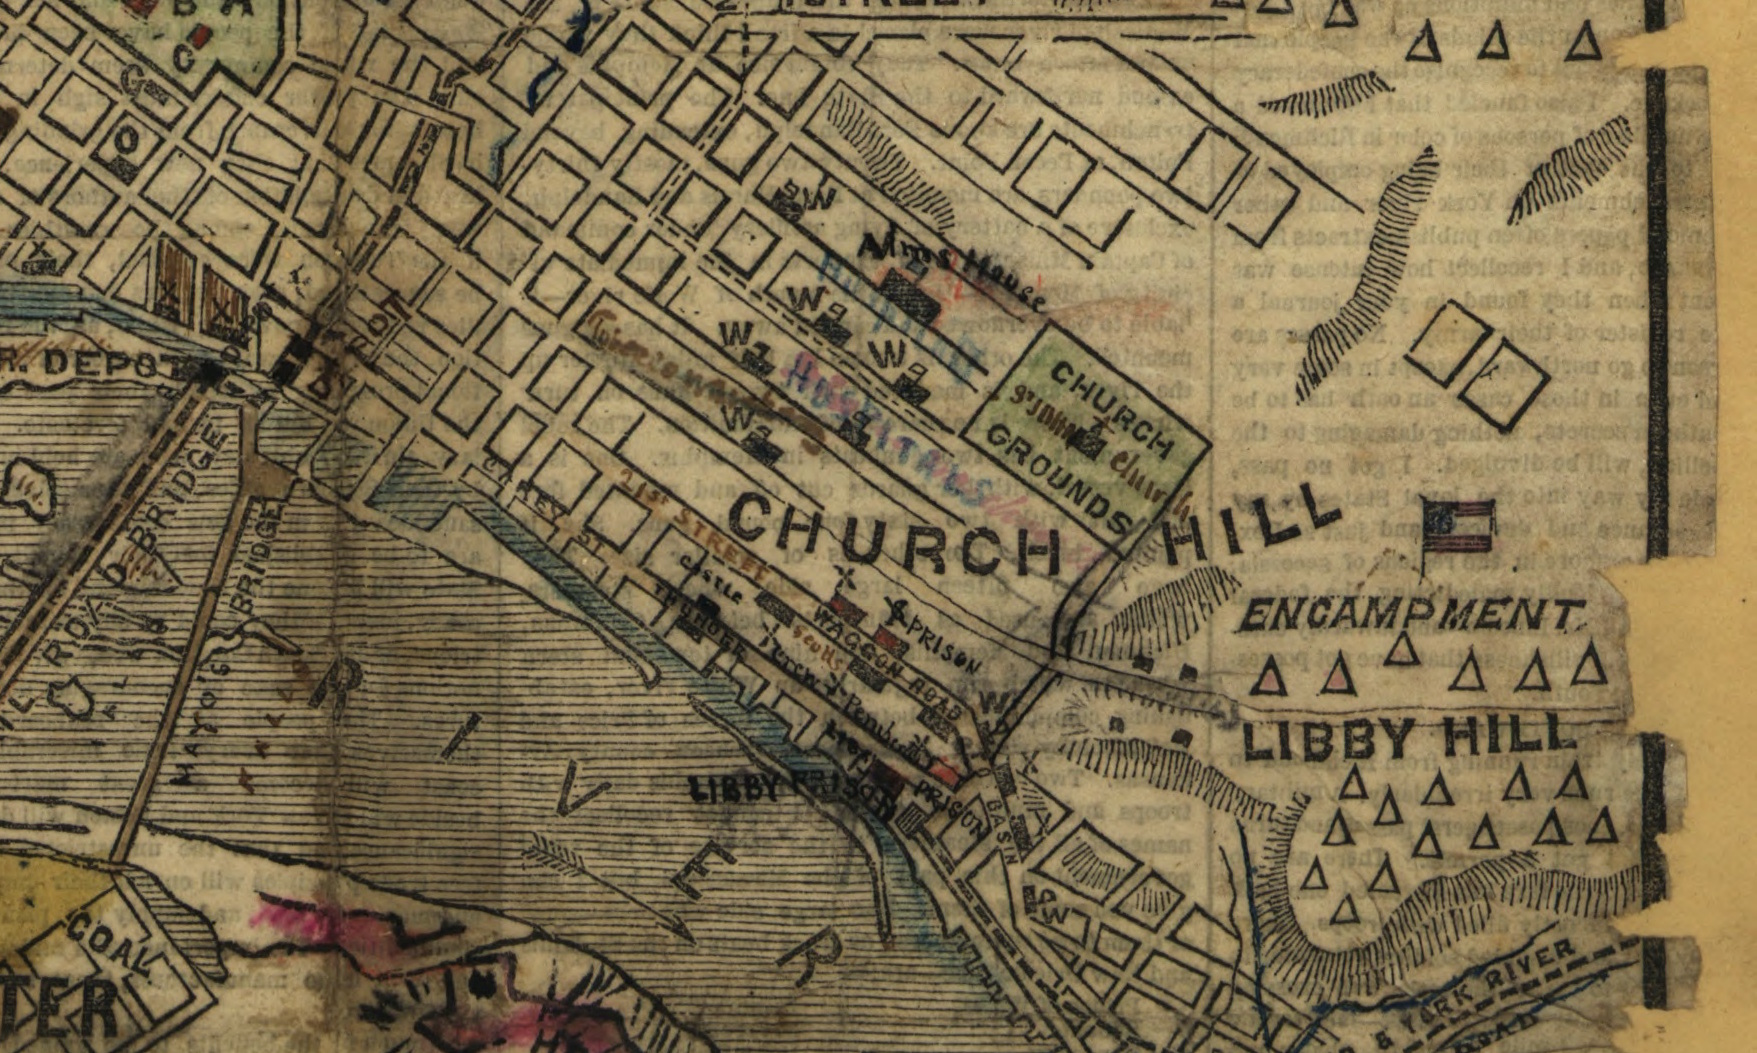 A large map of Church Hill Church Hill Peoples News Richmond